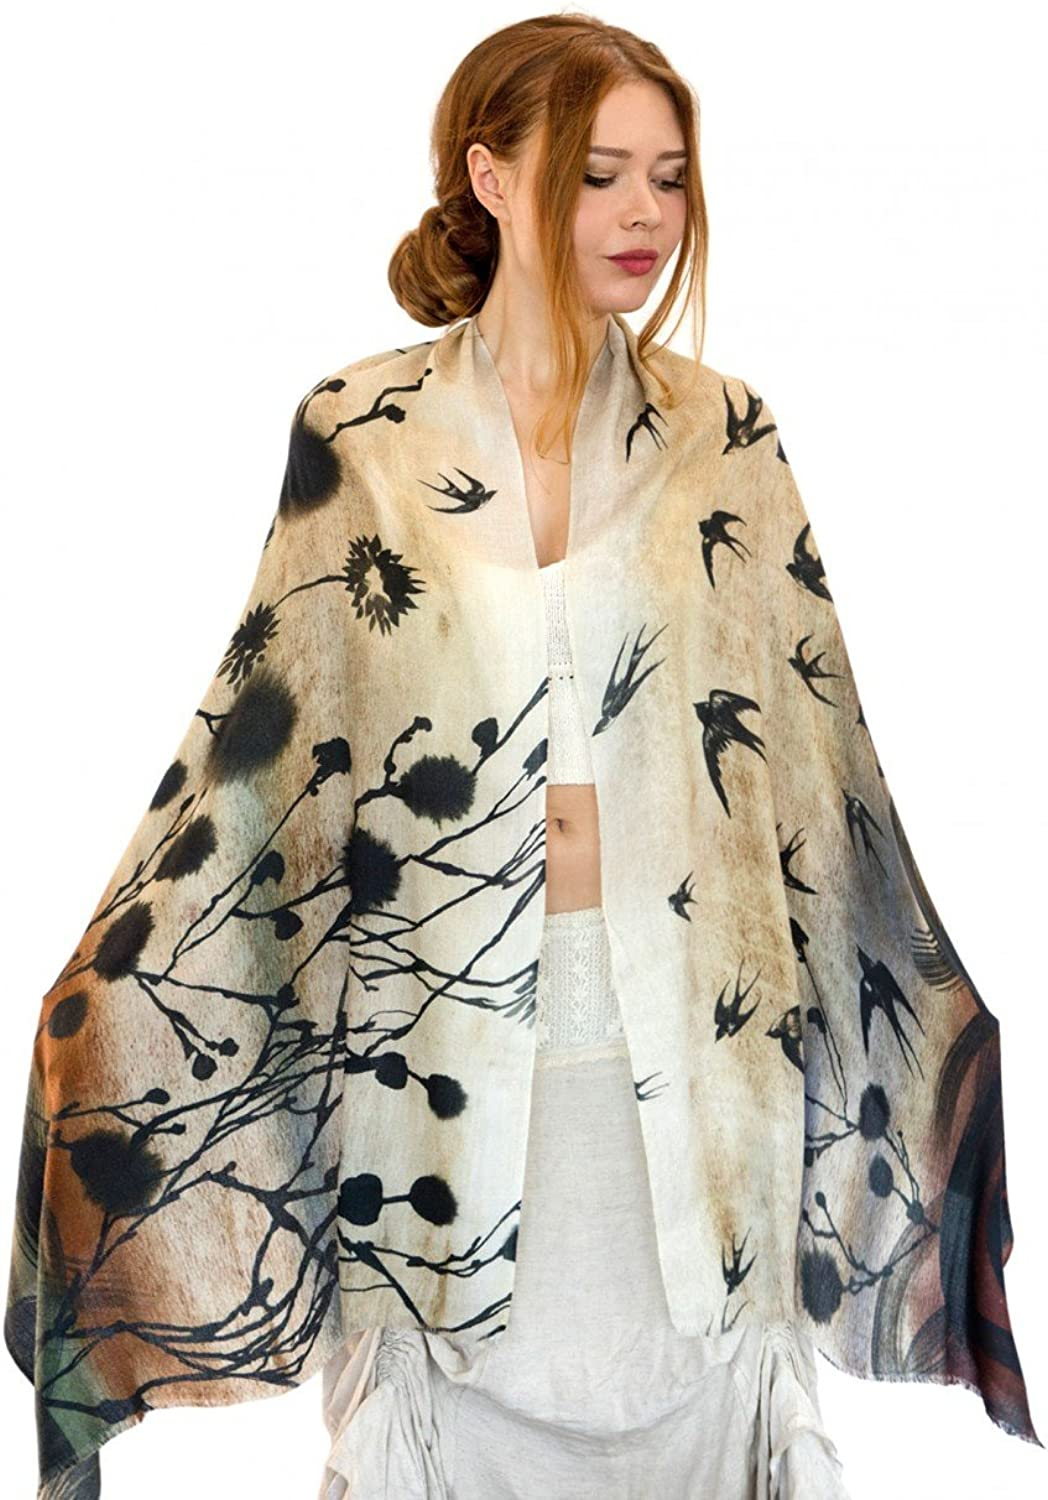 Delicately Hand Painted Birds Shawl & Digitally Printed on Silk & Cashmere Shawl